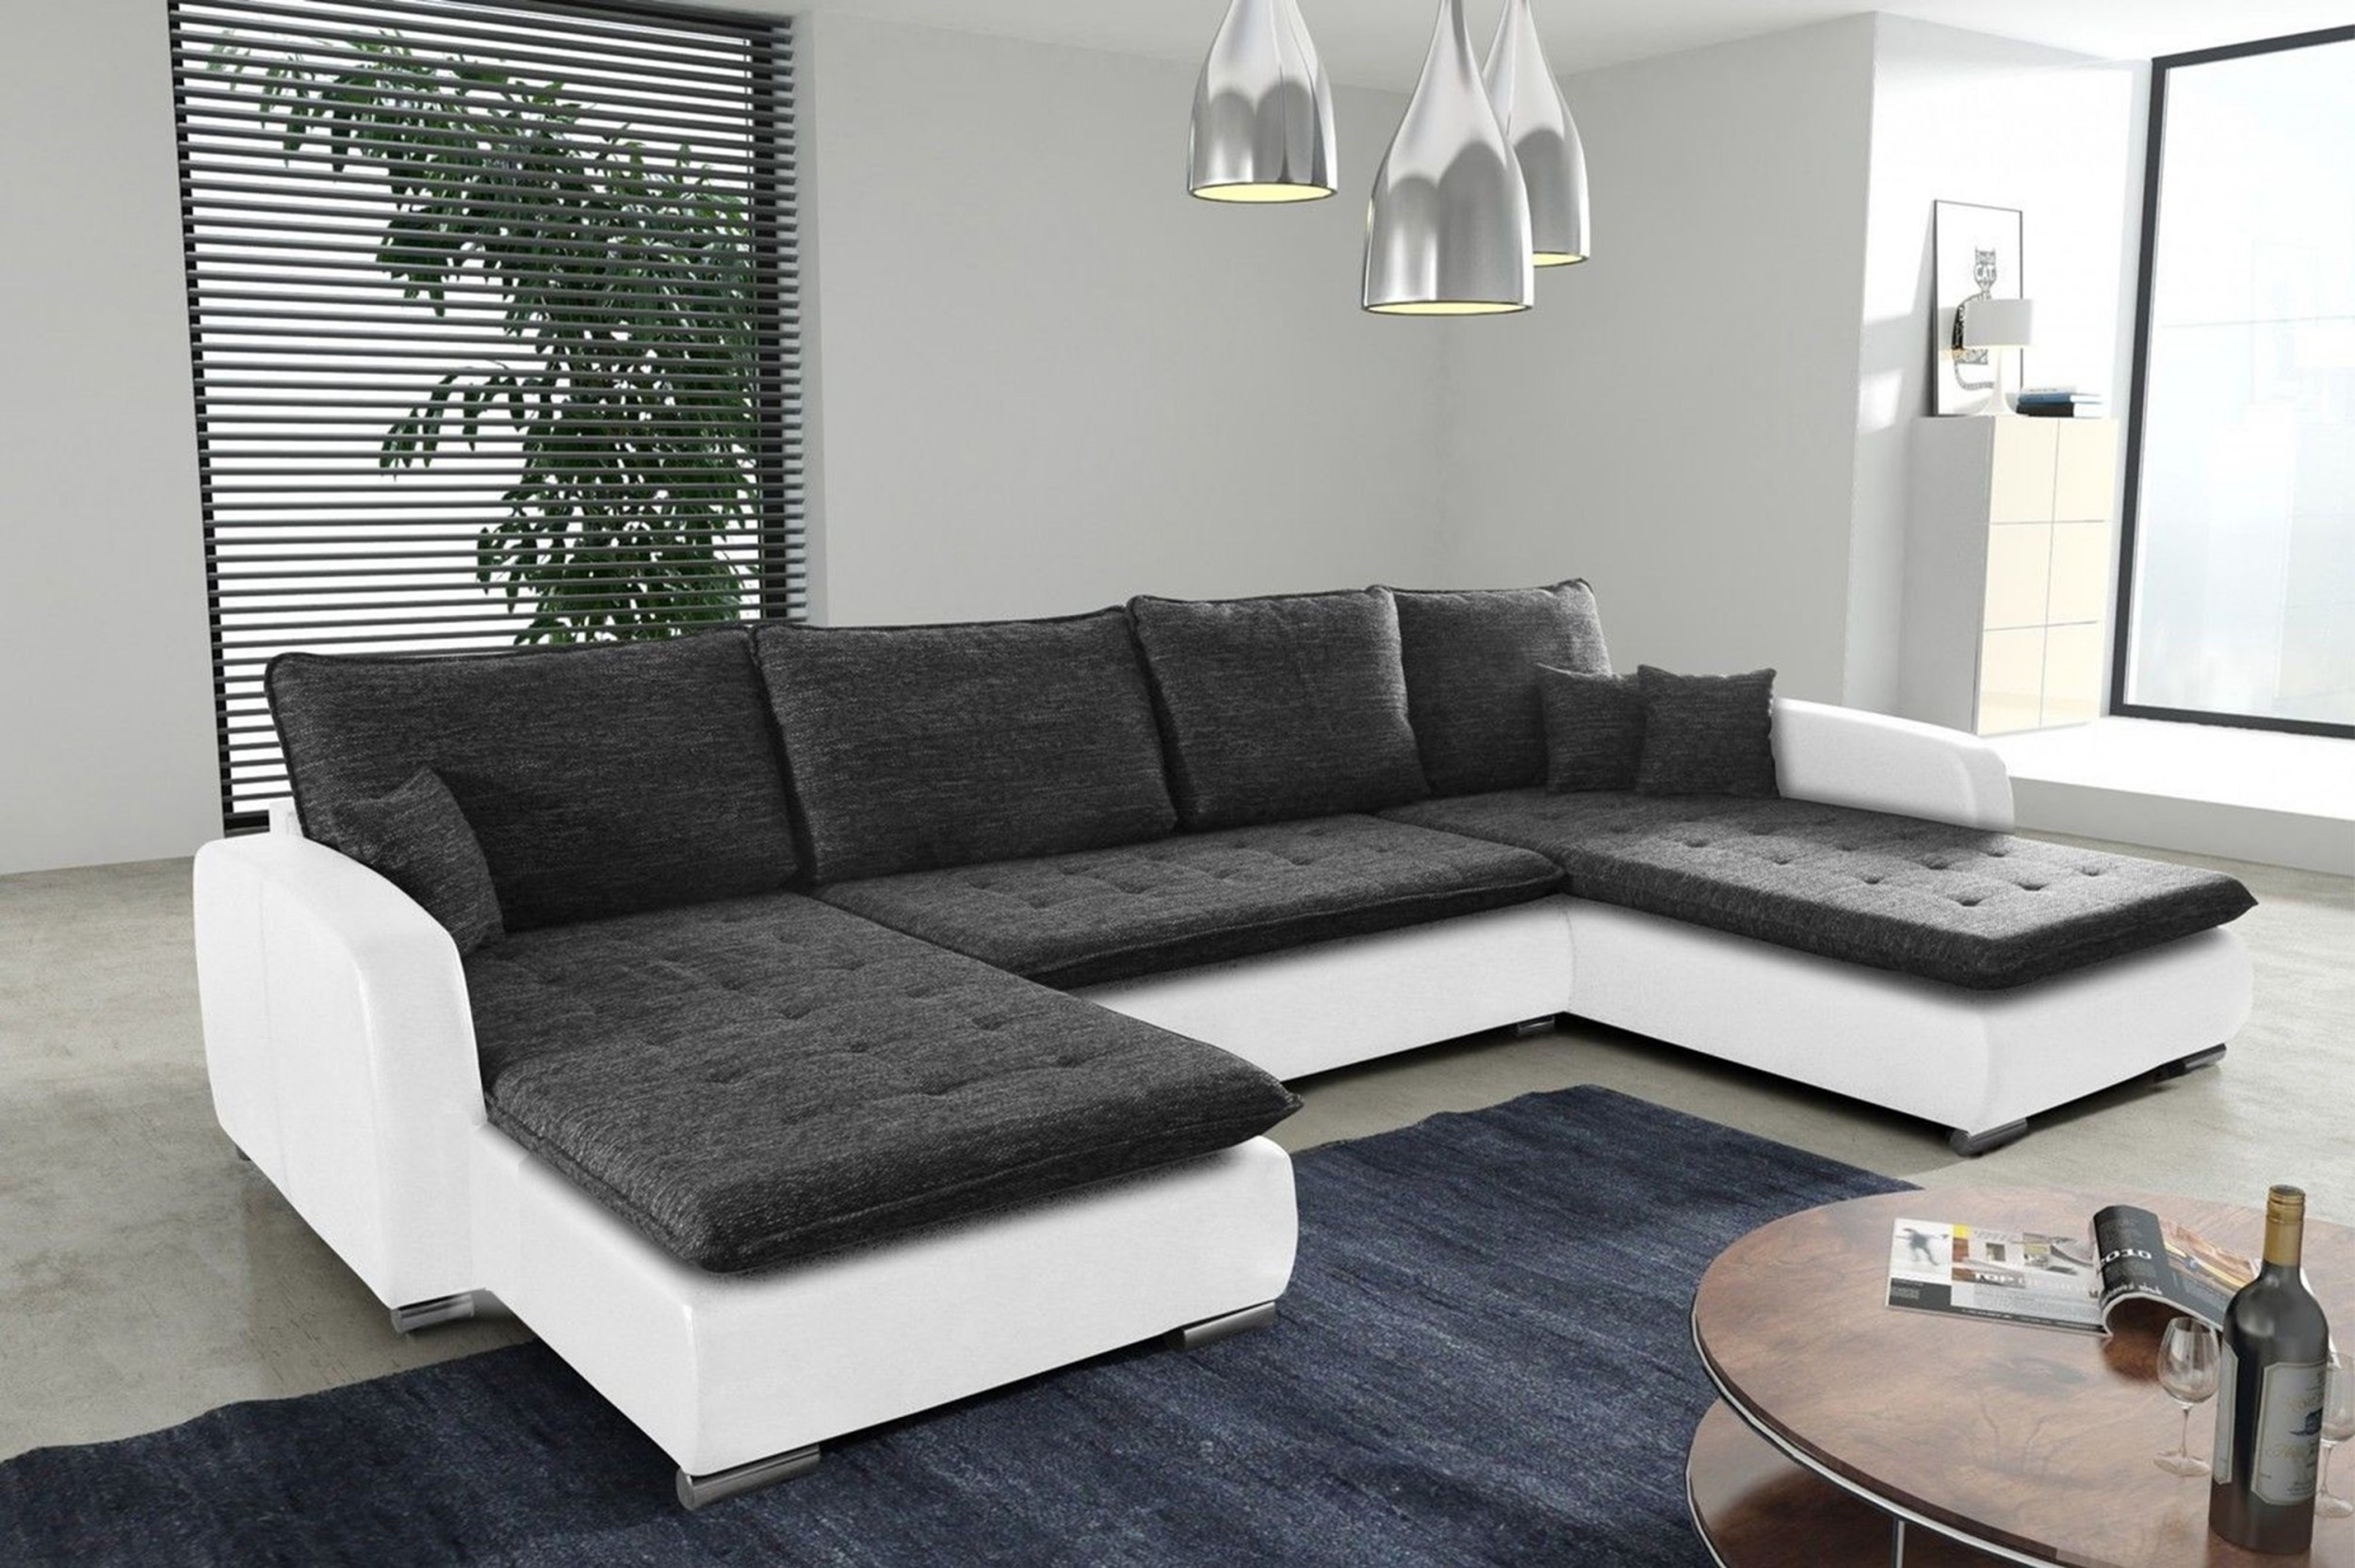 Schlafsofa sofa couch ecksofa eckcouch in grau mit for Eckcouch design